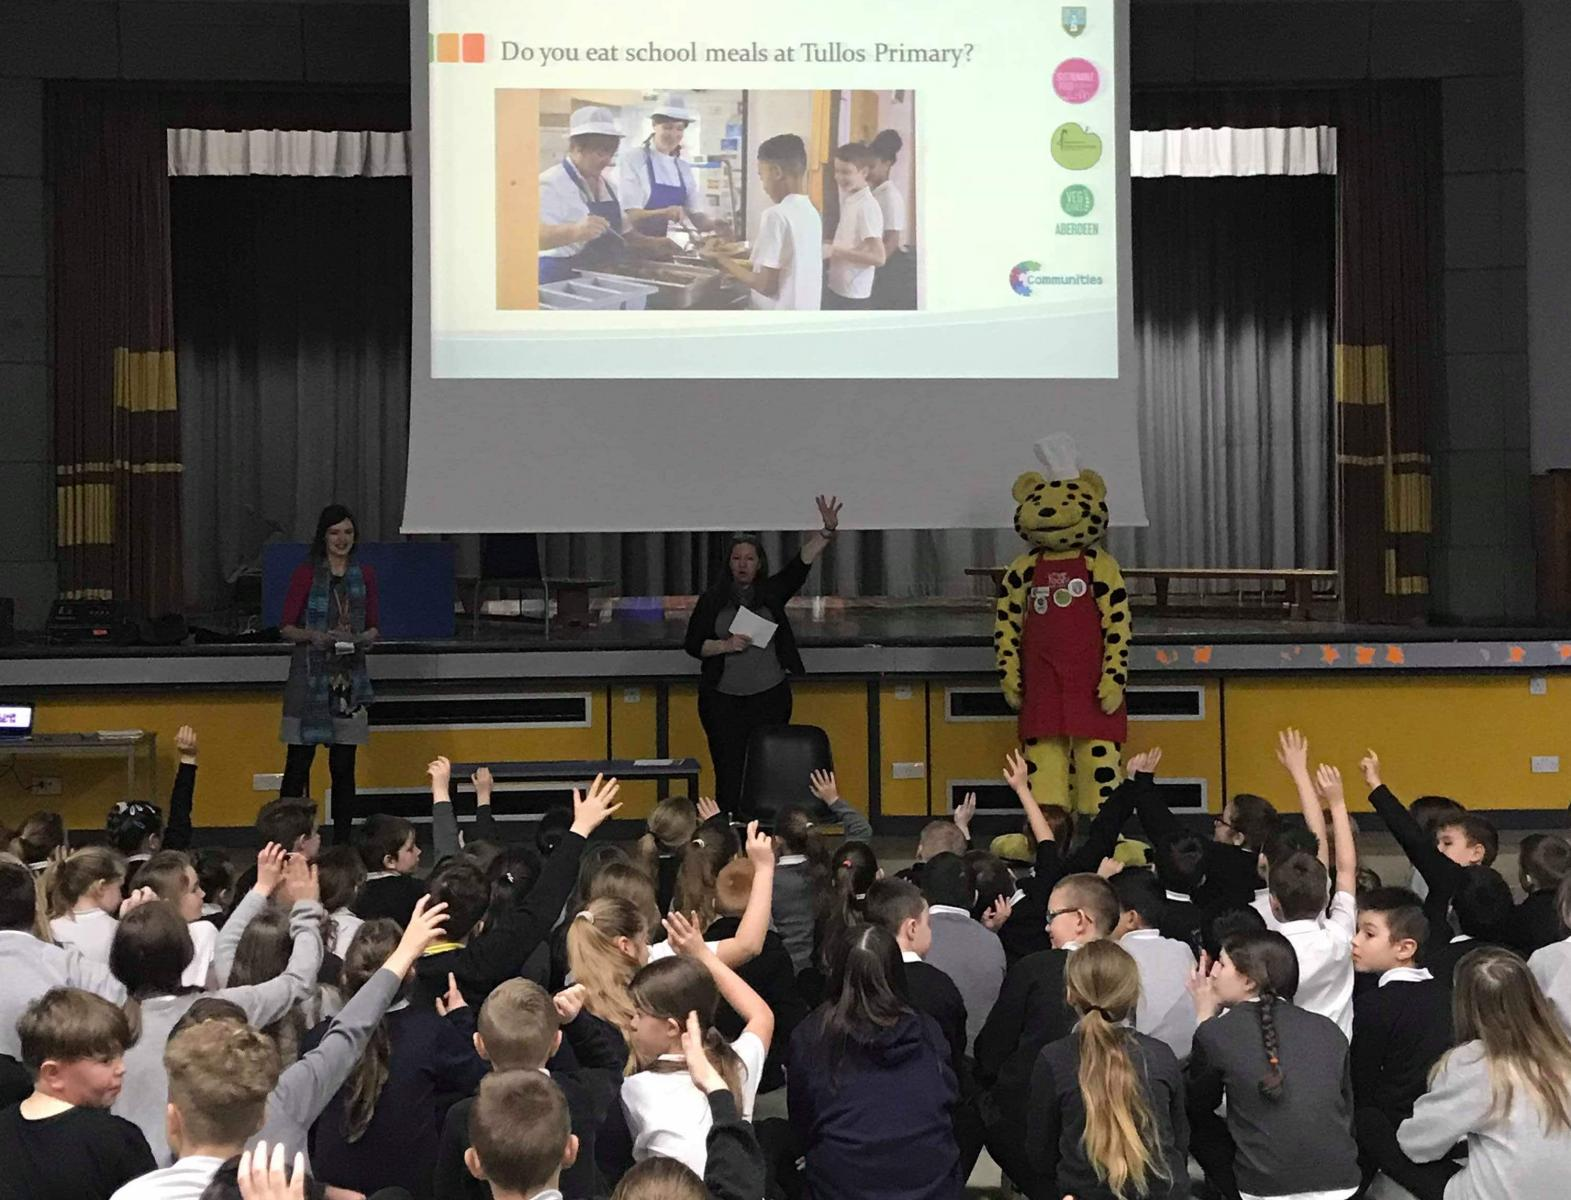 To kick-off the project, CFINE and the City Council Communities Team held an assembly with the whole school. Credit: CFINE